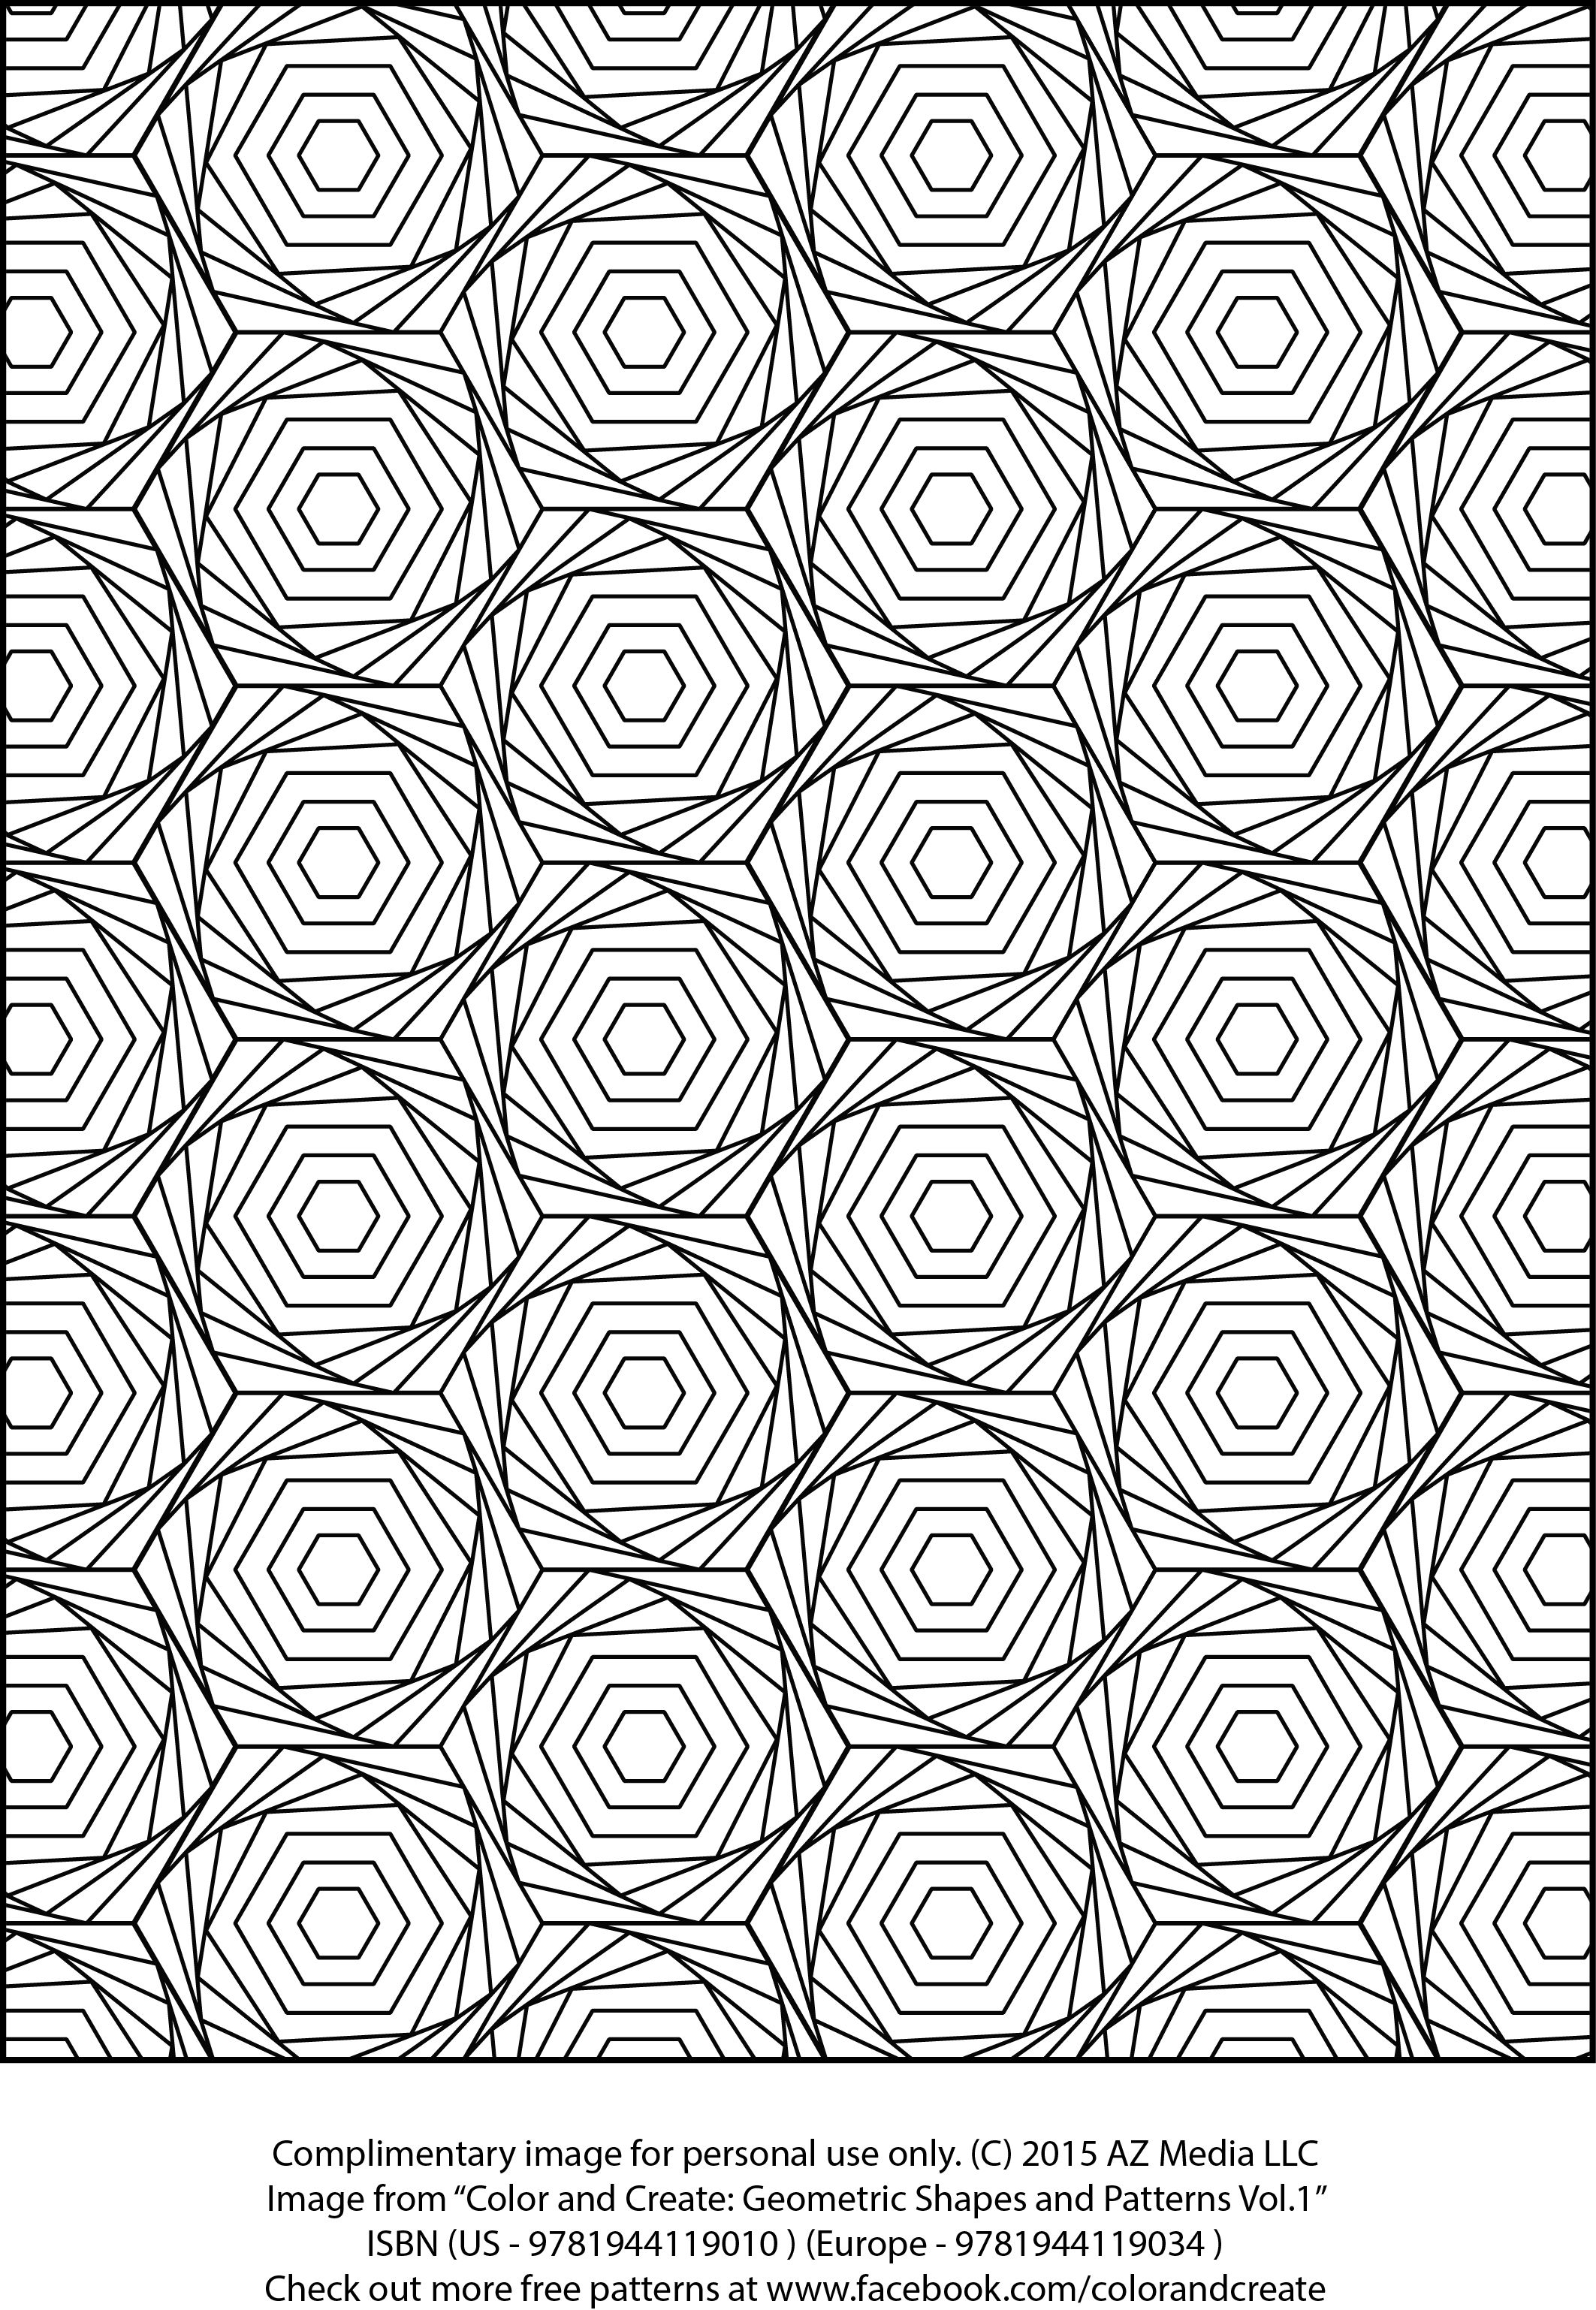 Complimentary Coloring Sheet From Color And Create Geometric